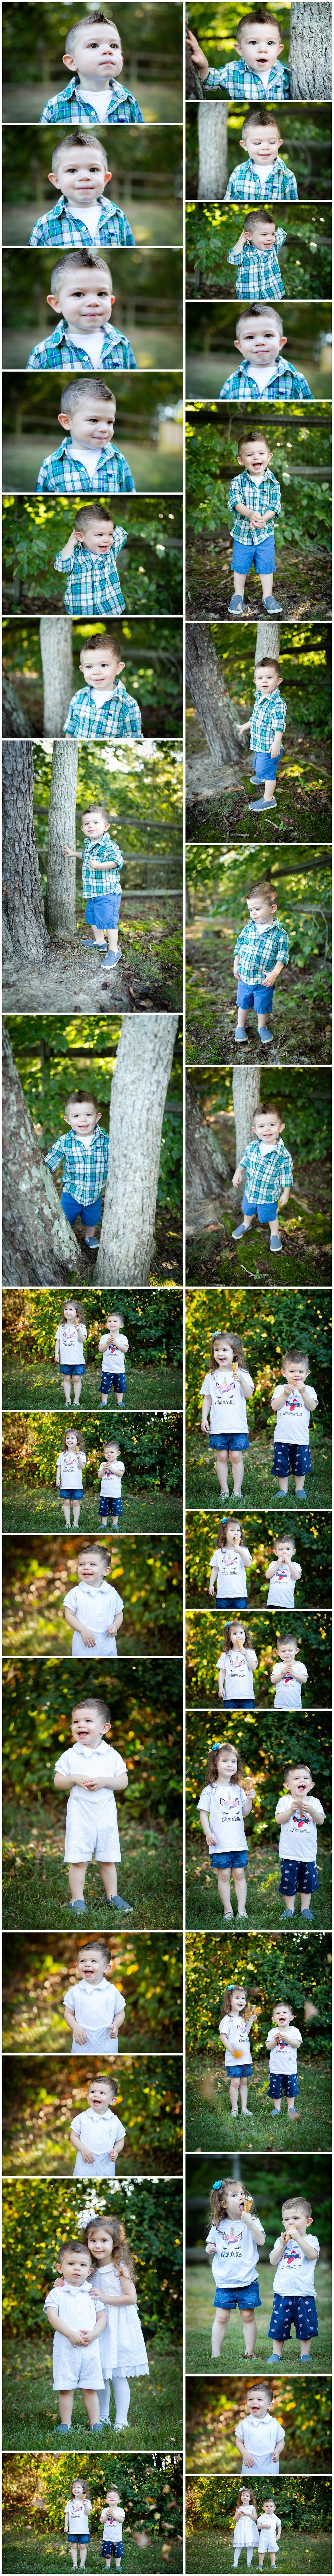 maryn graves productions cooper second birthday backyard mini session